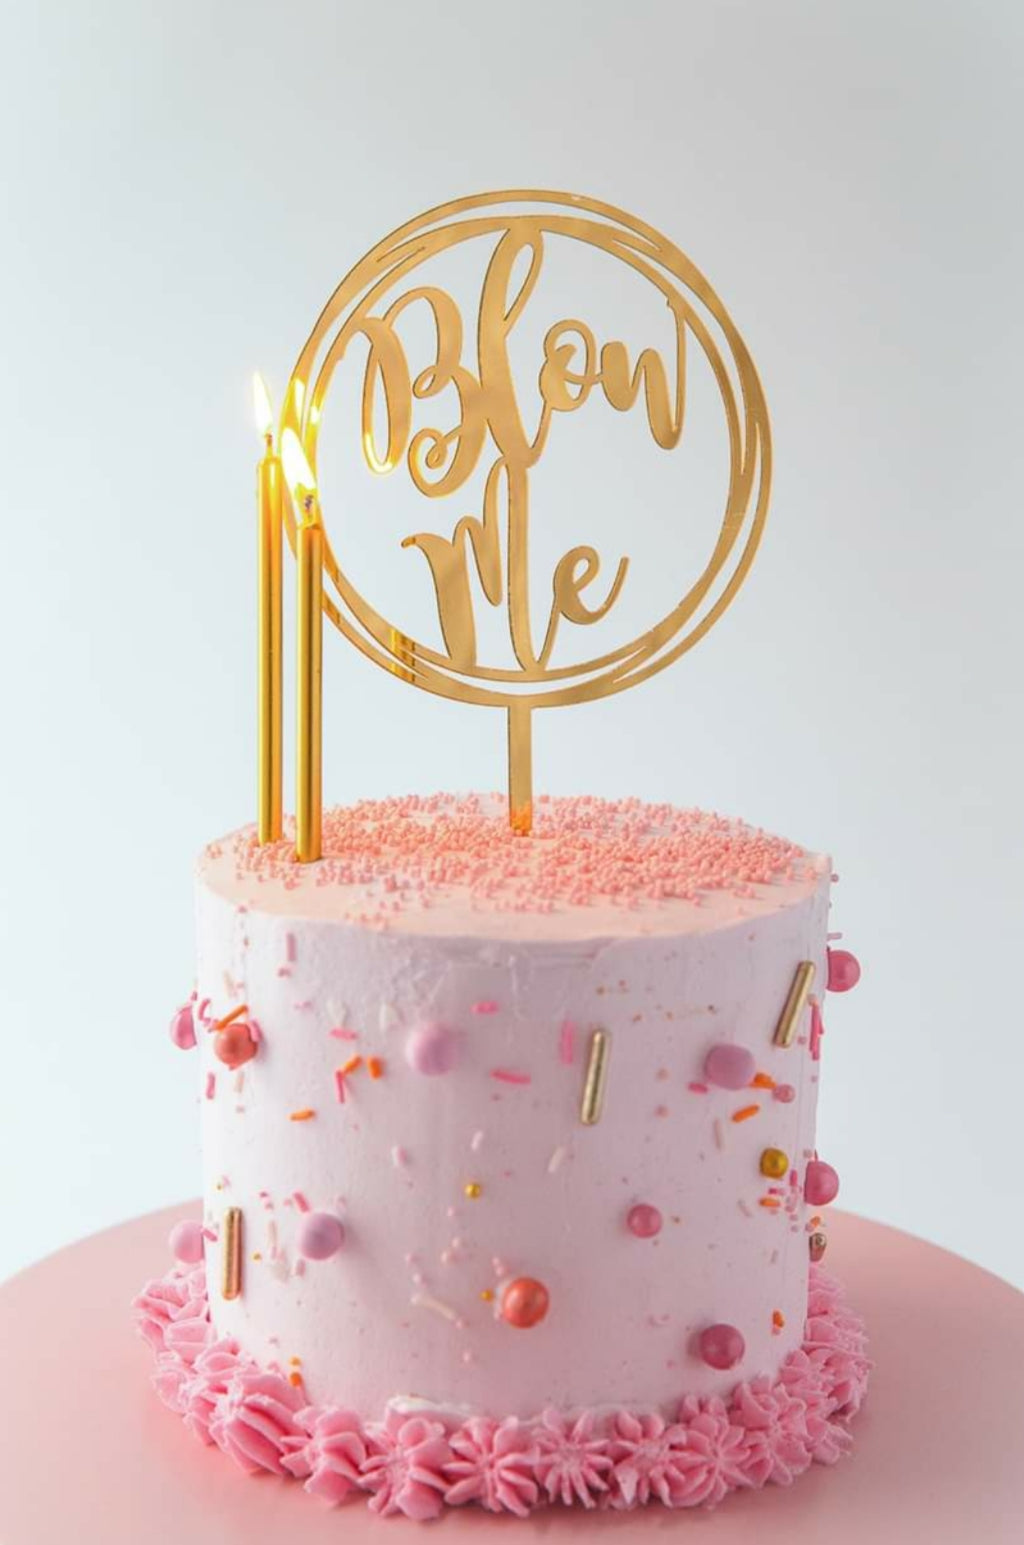 Gold Acrylic Topper - Blow Me